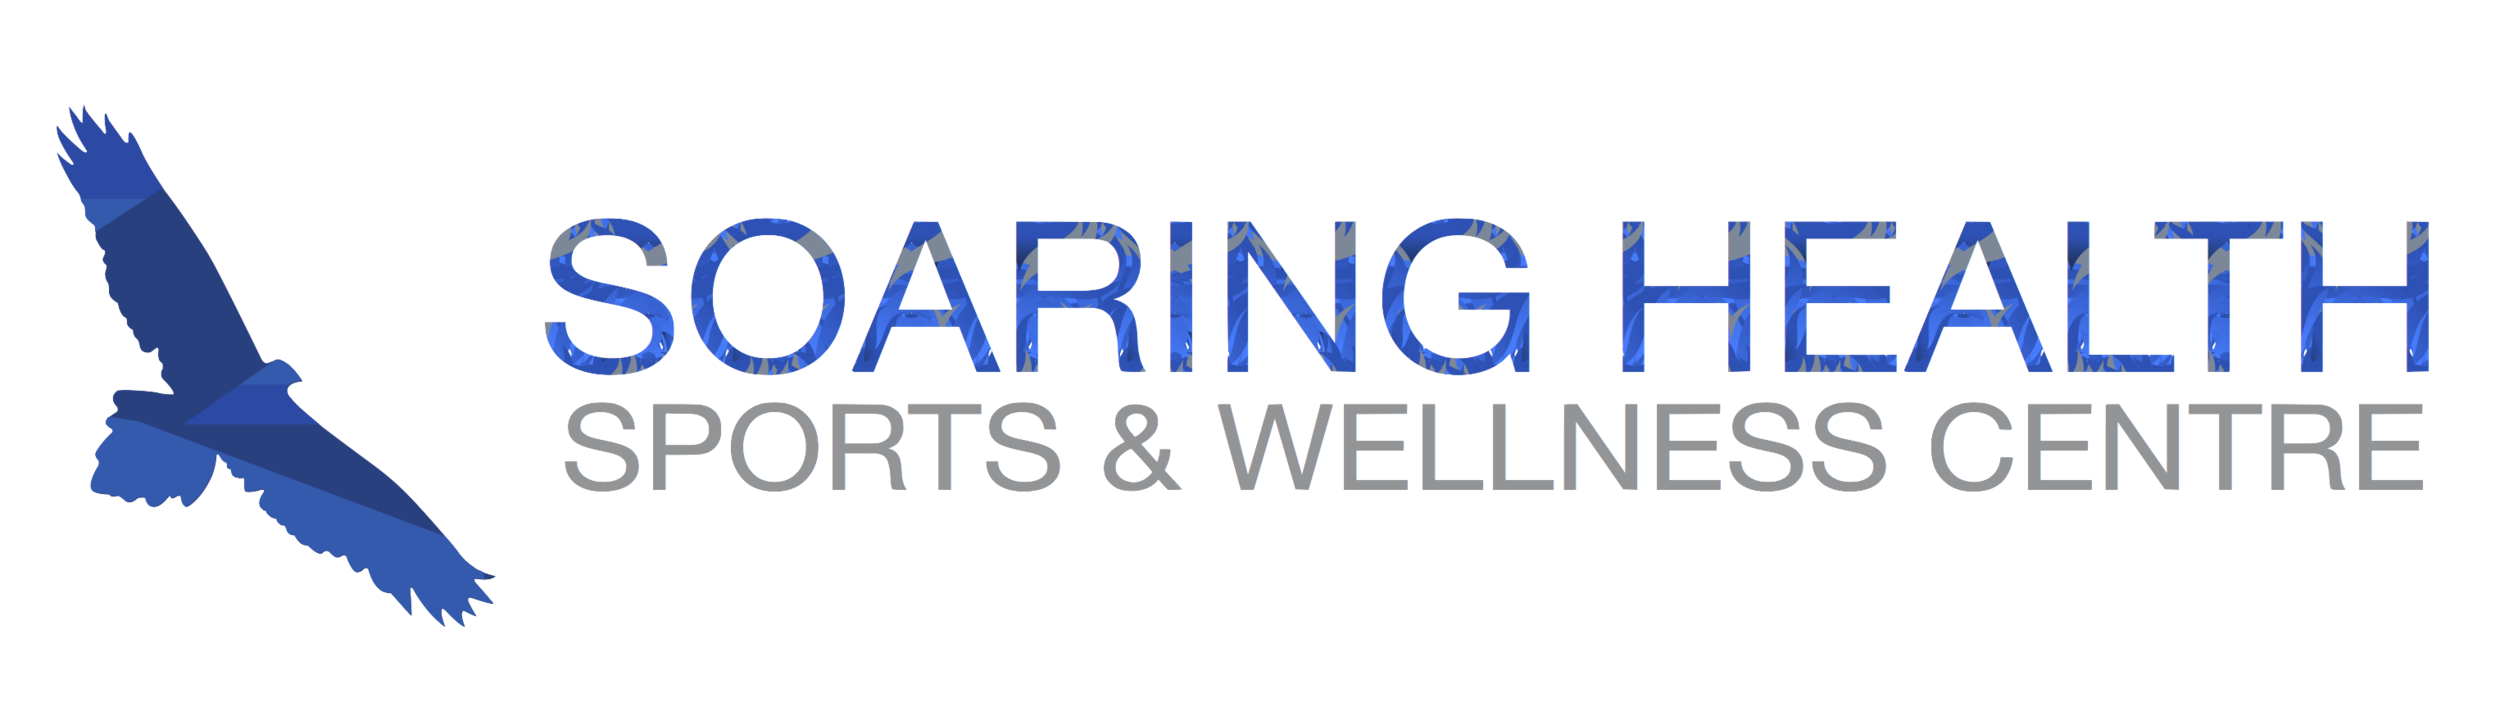 Soaring Health Sports & Wellness